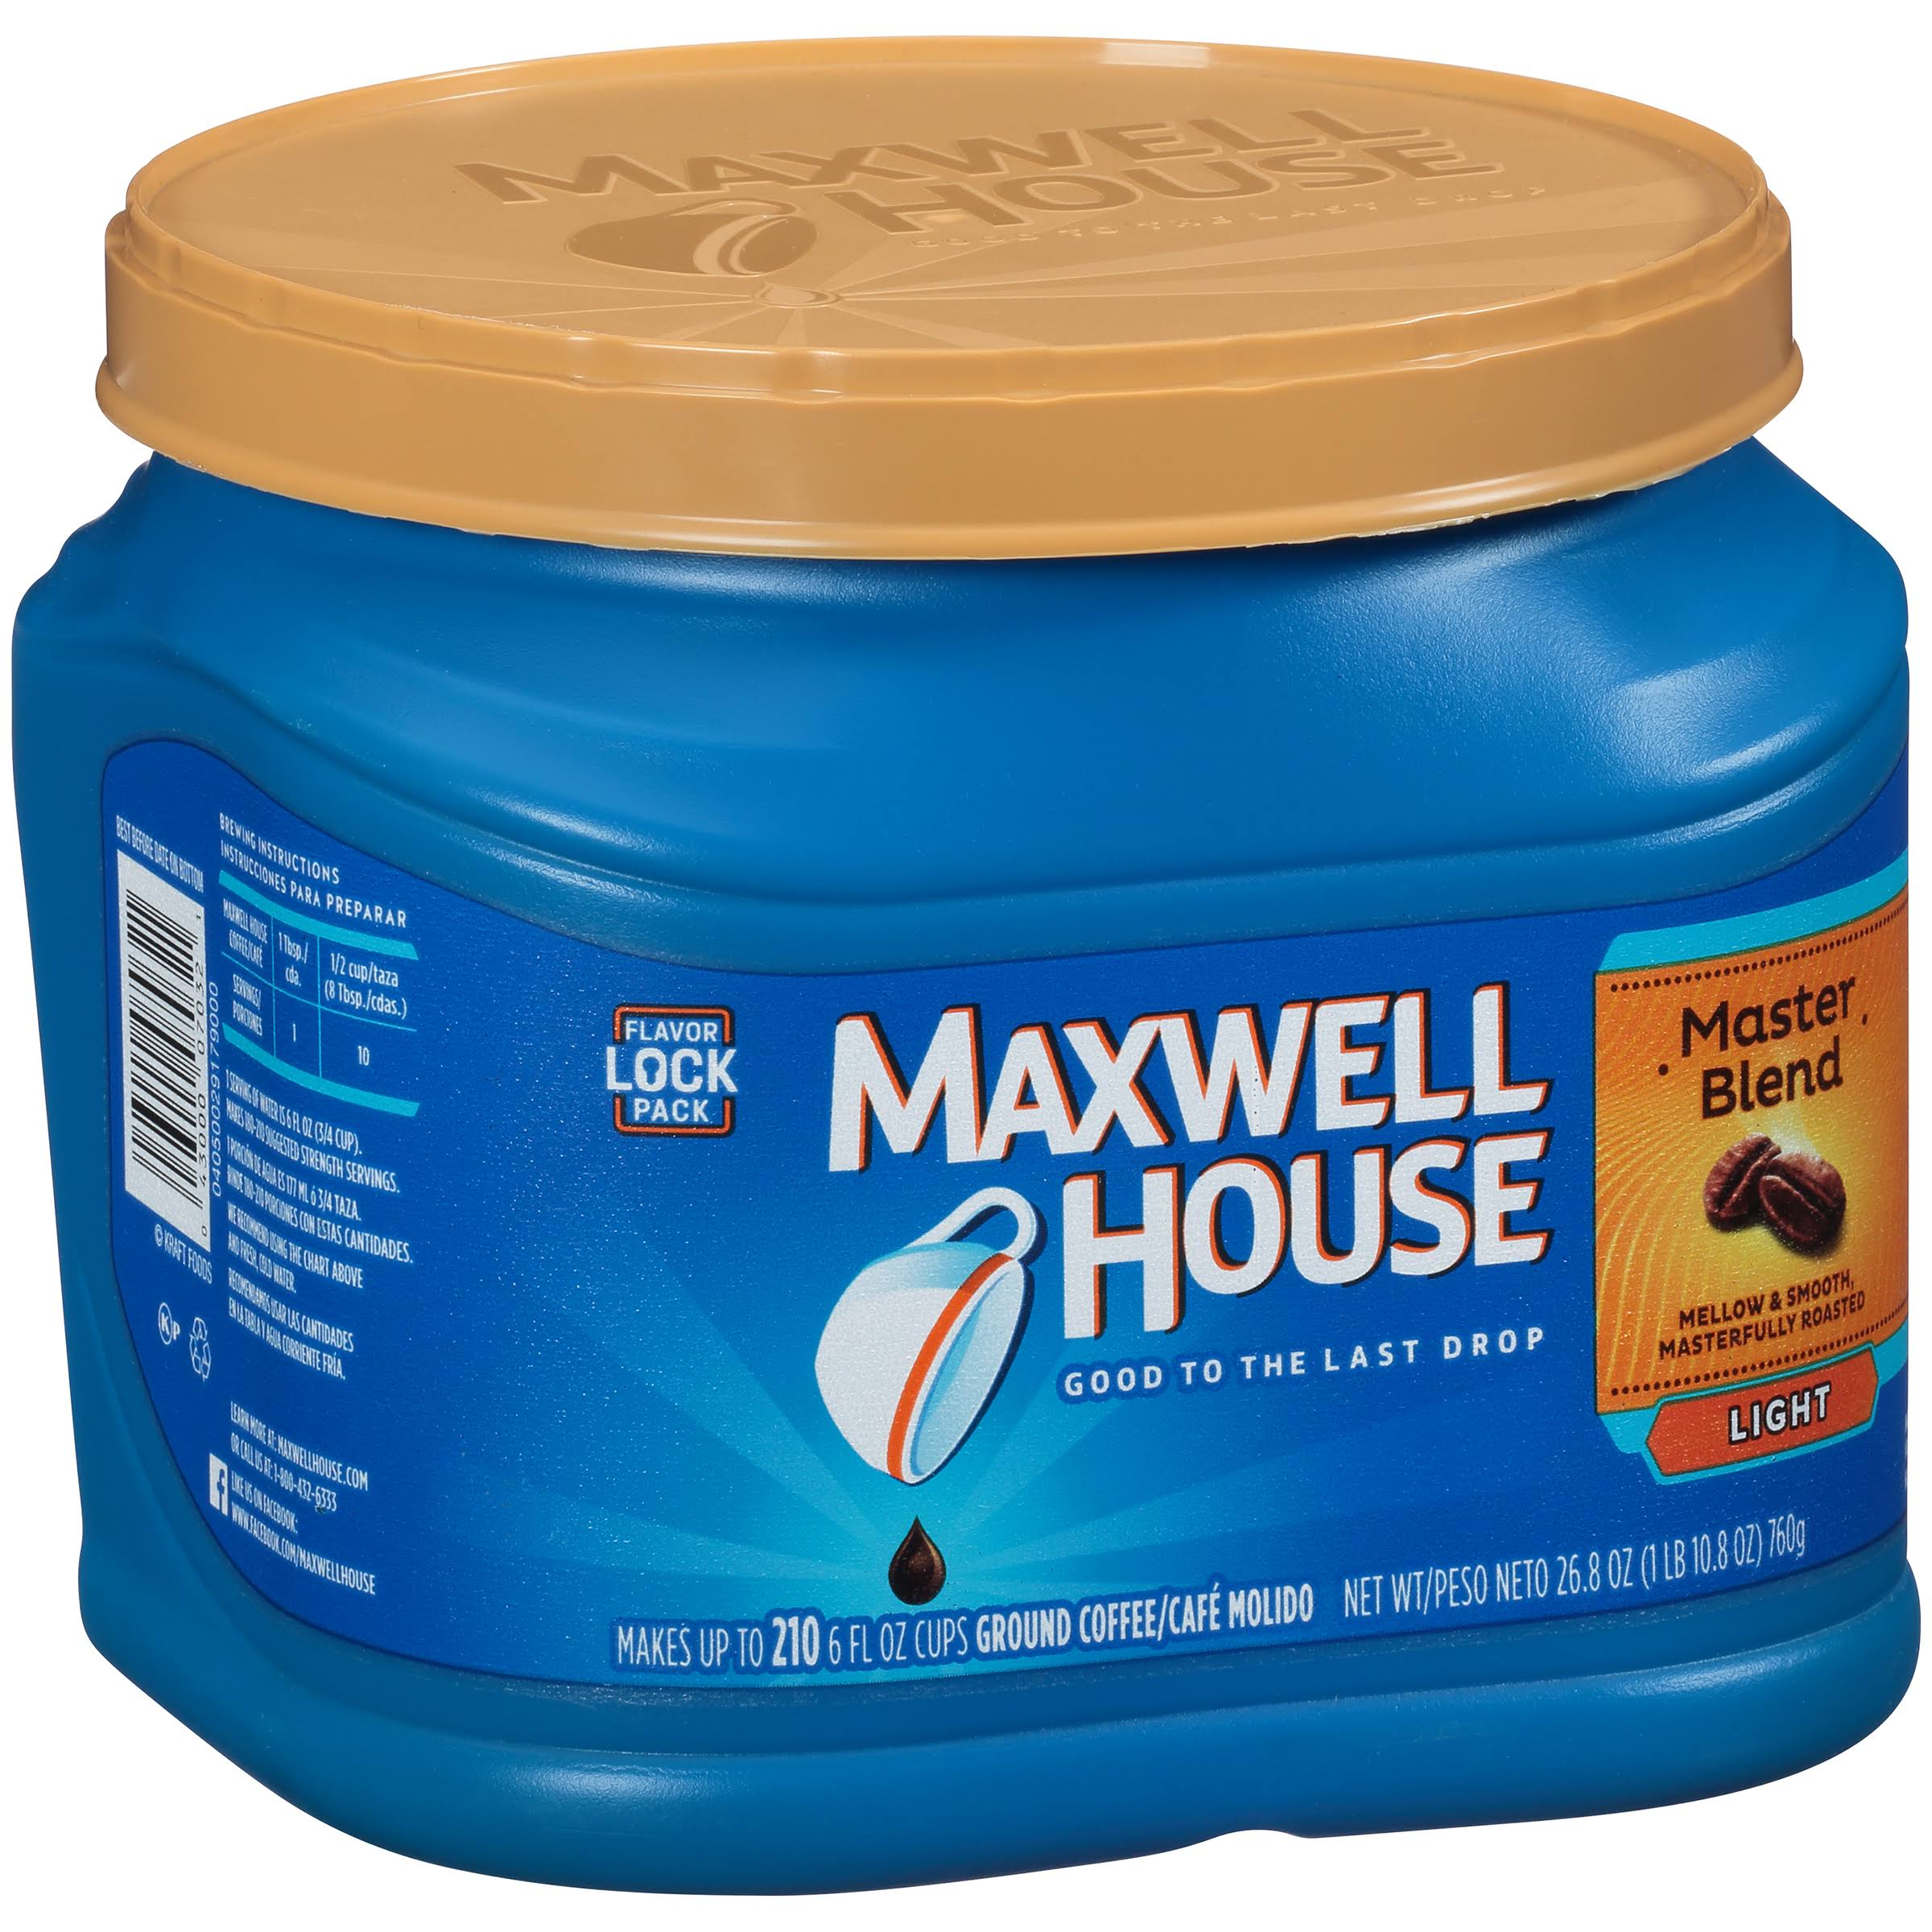 Maxwell House Master Blend Light Ground Coffee - 26.8oz